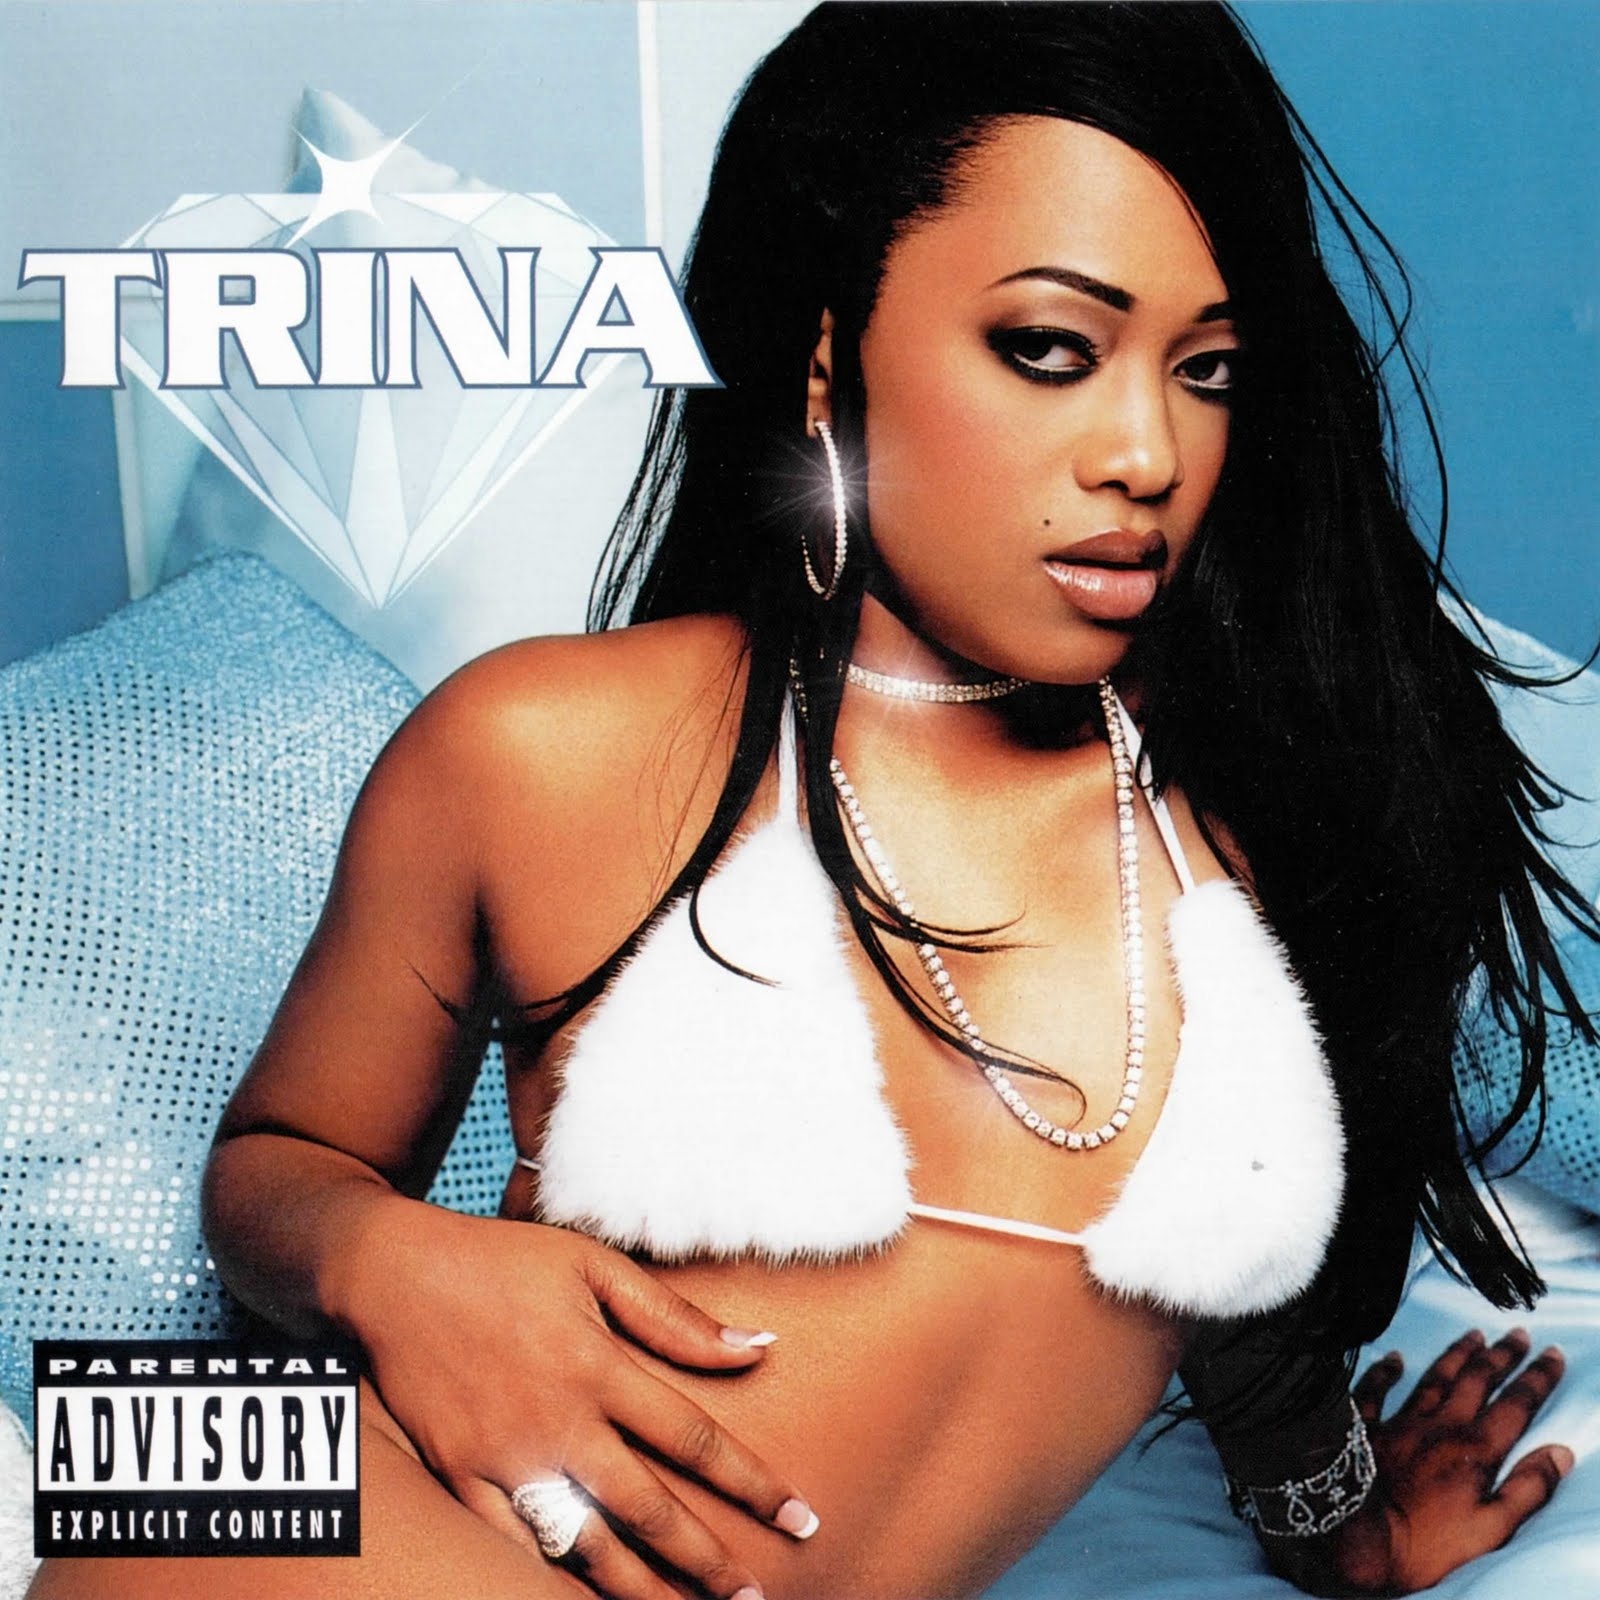 Trina, Diamond Princess